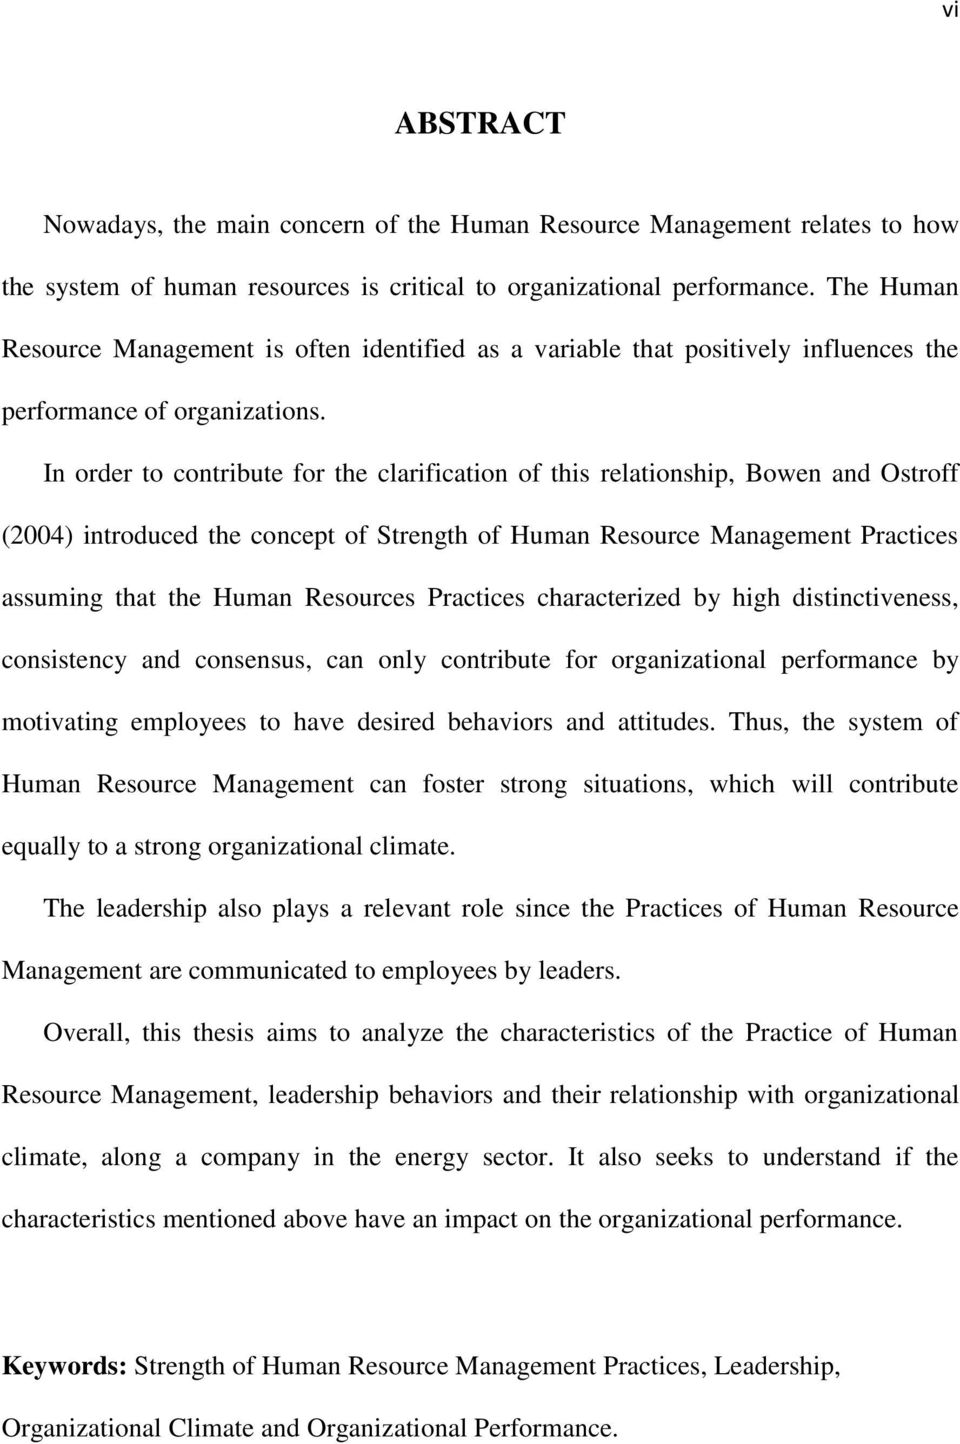 In order to contribute for the clarification of this relationship, Bowen and Ostroff (2004) introduced the concept of Strength of Human Resource Management Practices assuming that the Human Resources